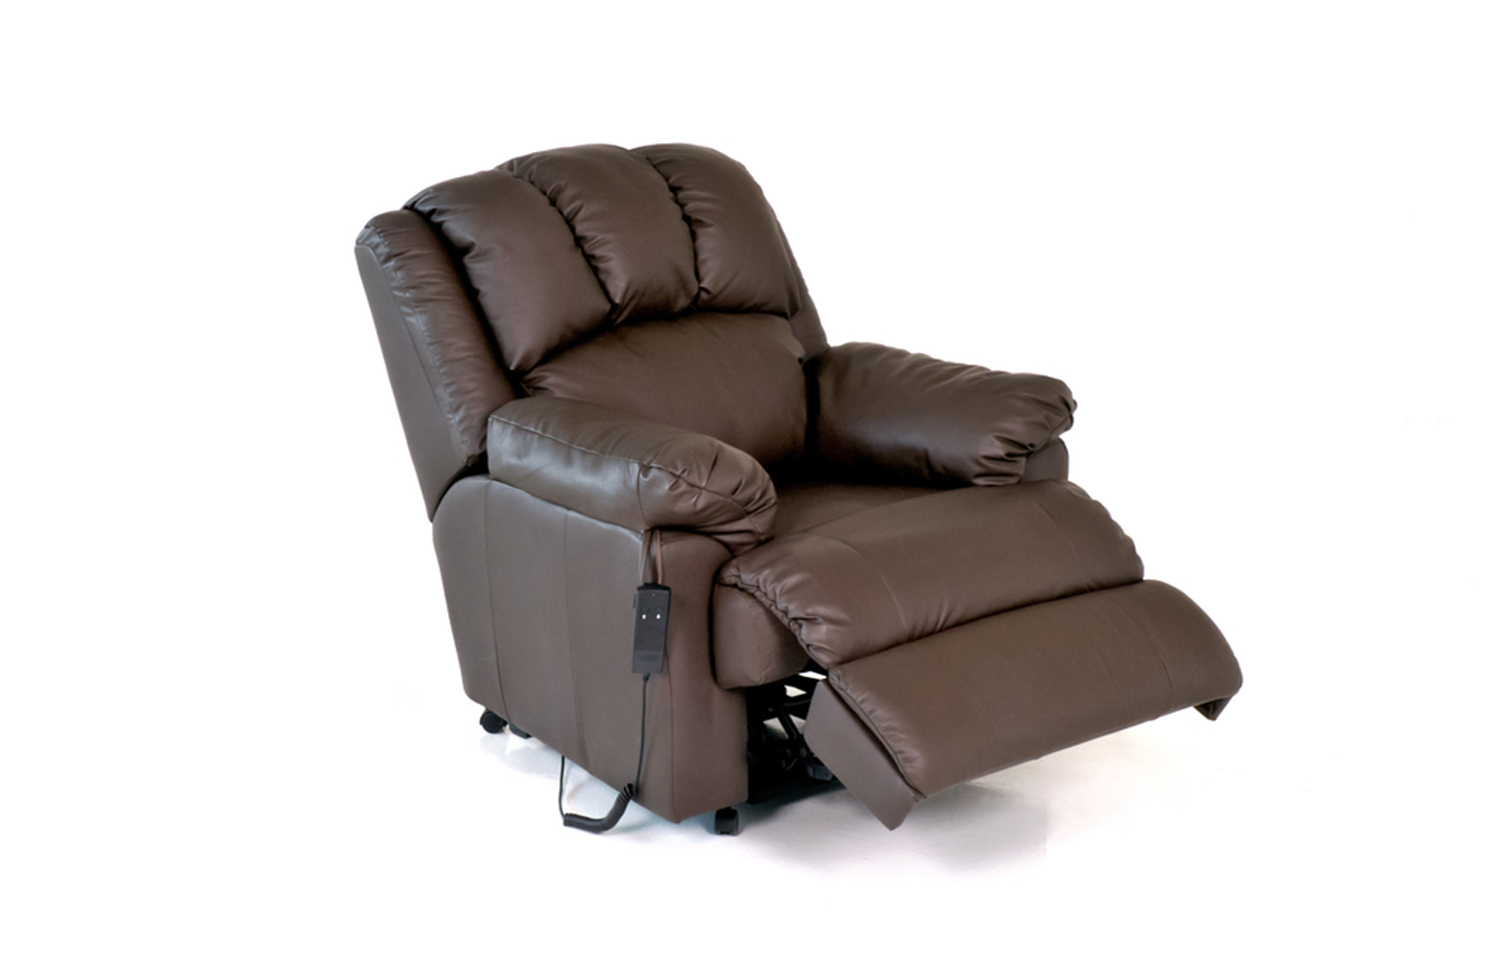 Are Recliner Sofas Good for Your Back?